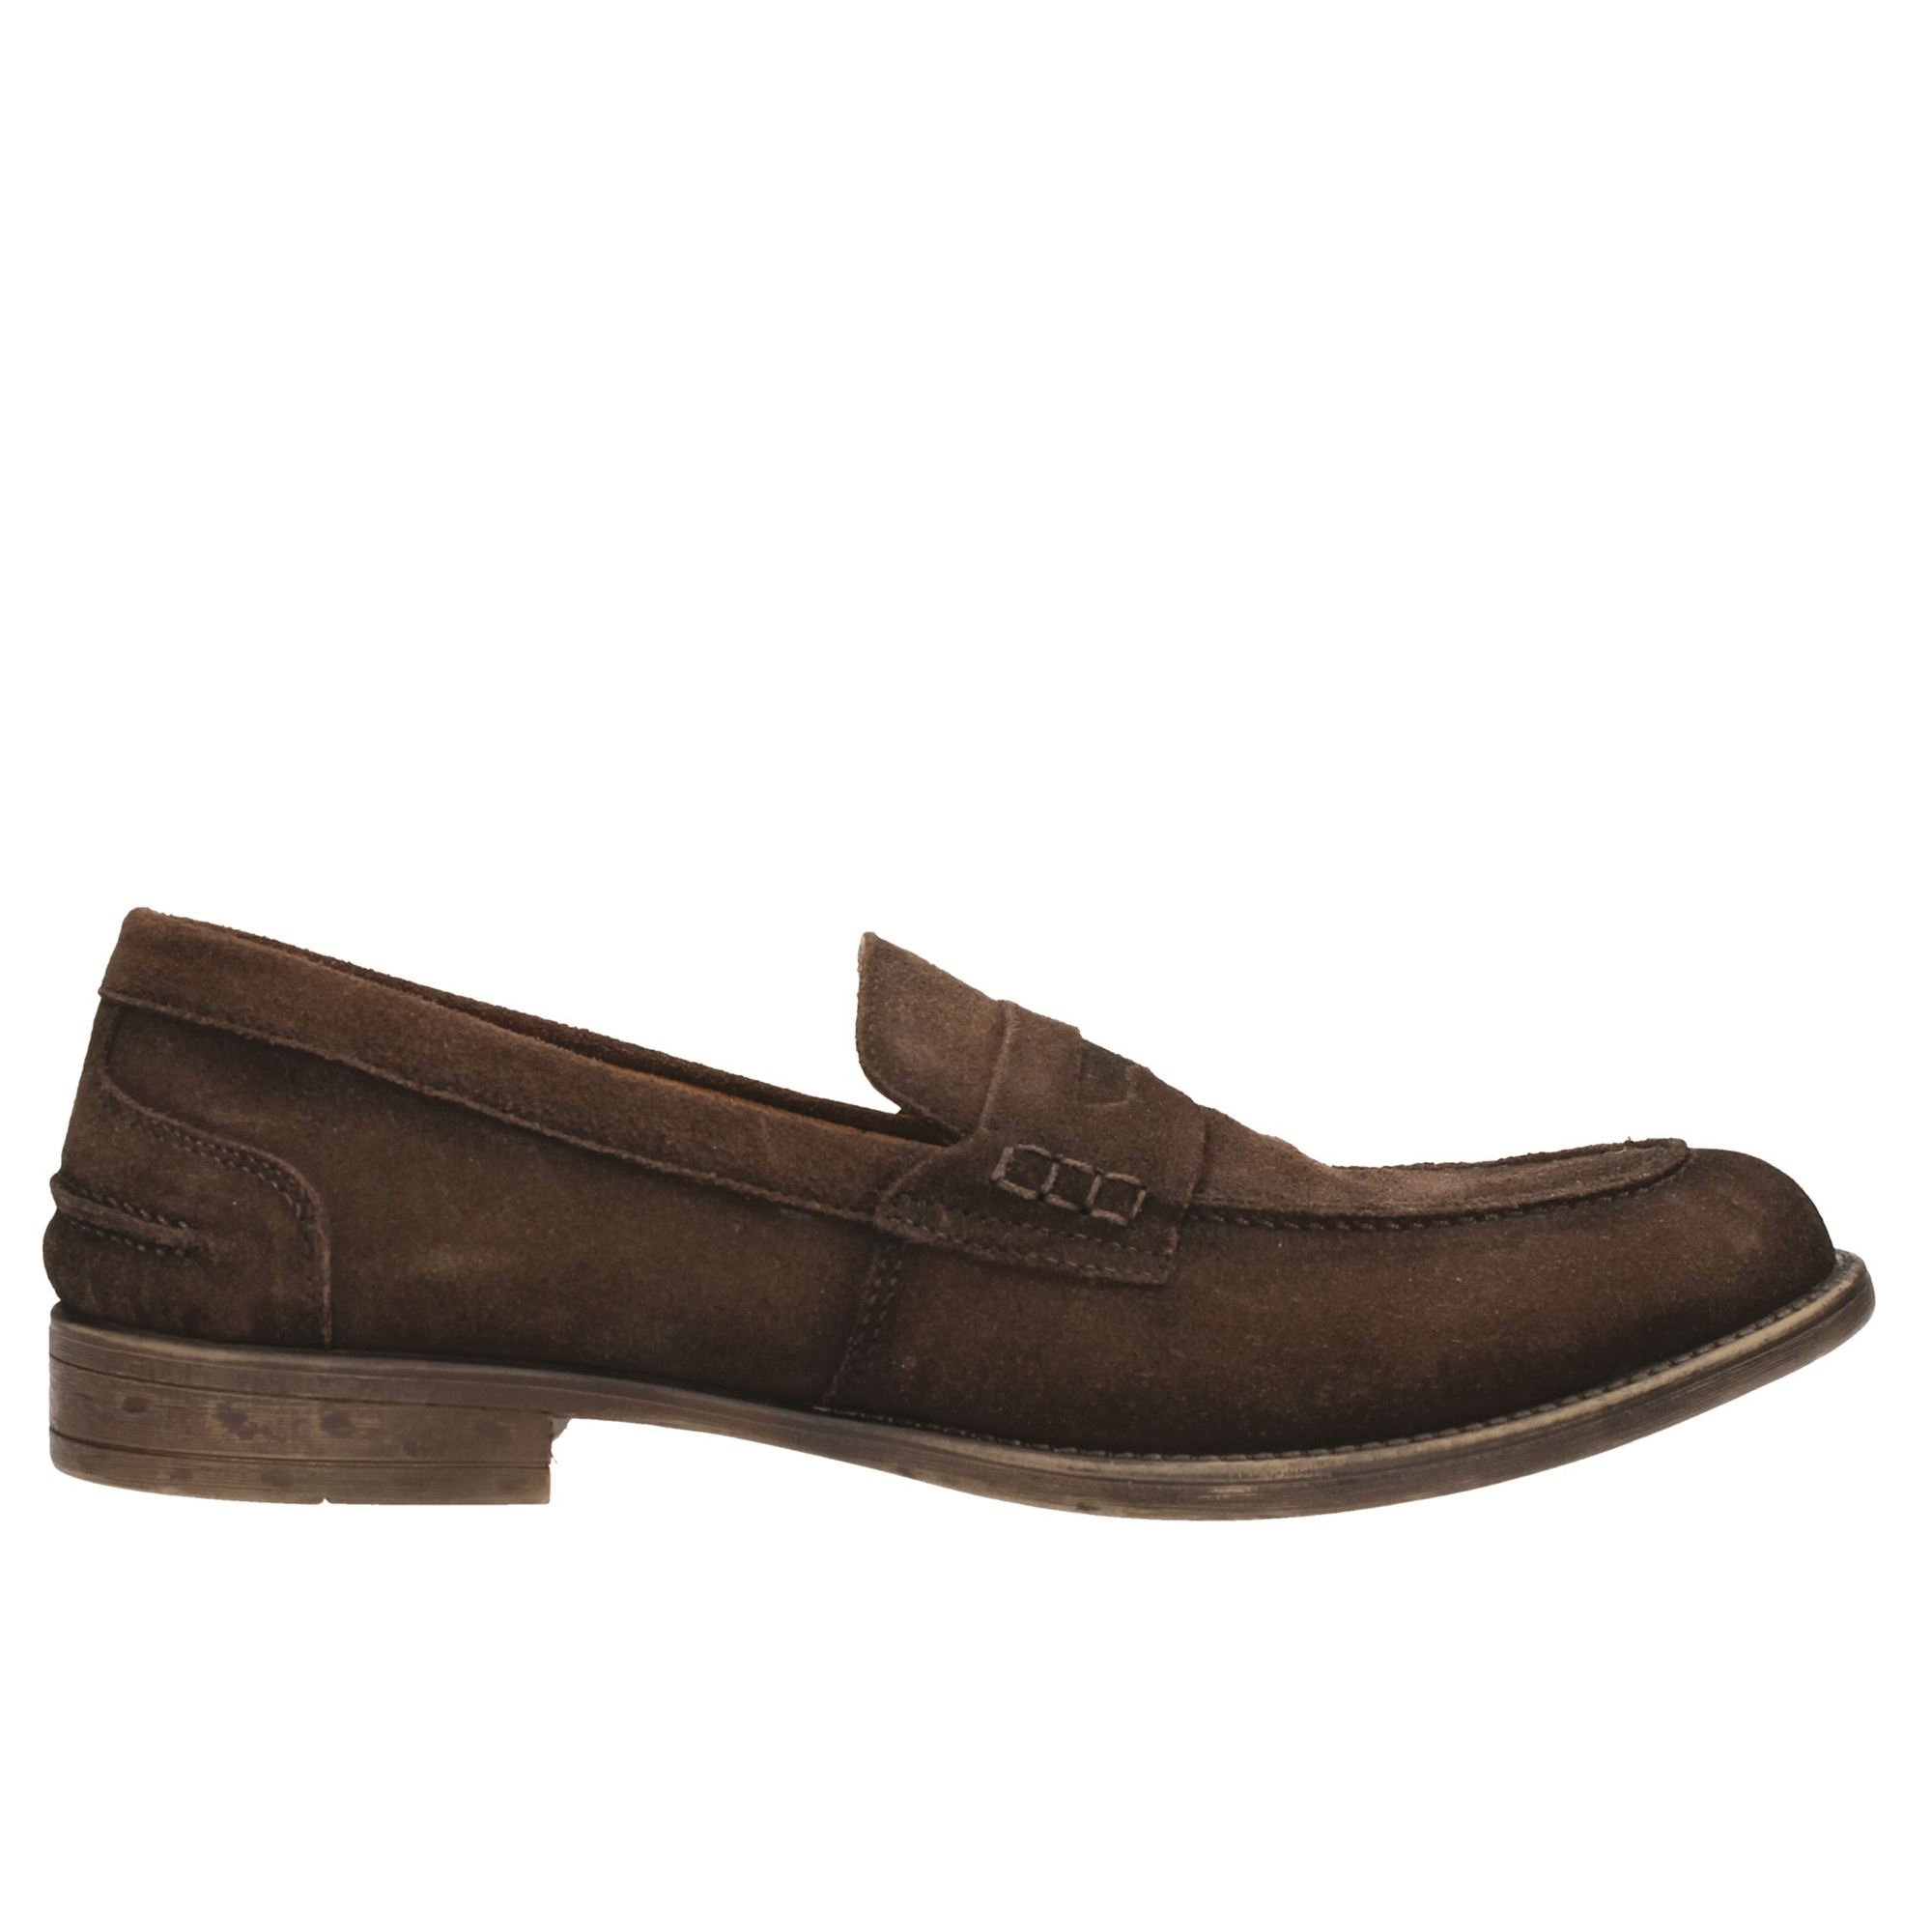 Tata Italia Shoes Man Mocassini Brown 18-15-06